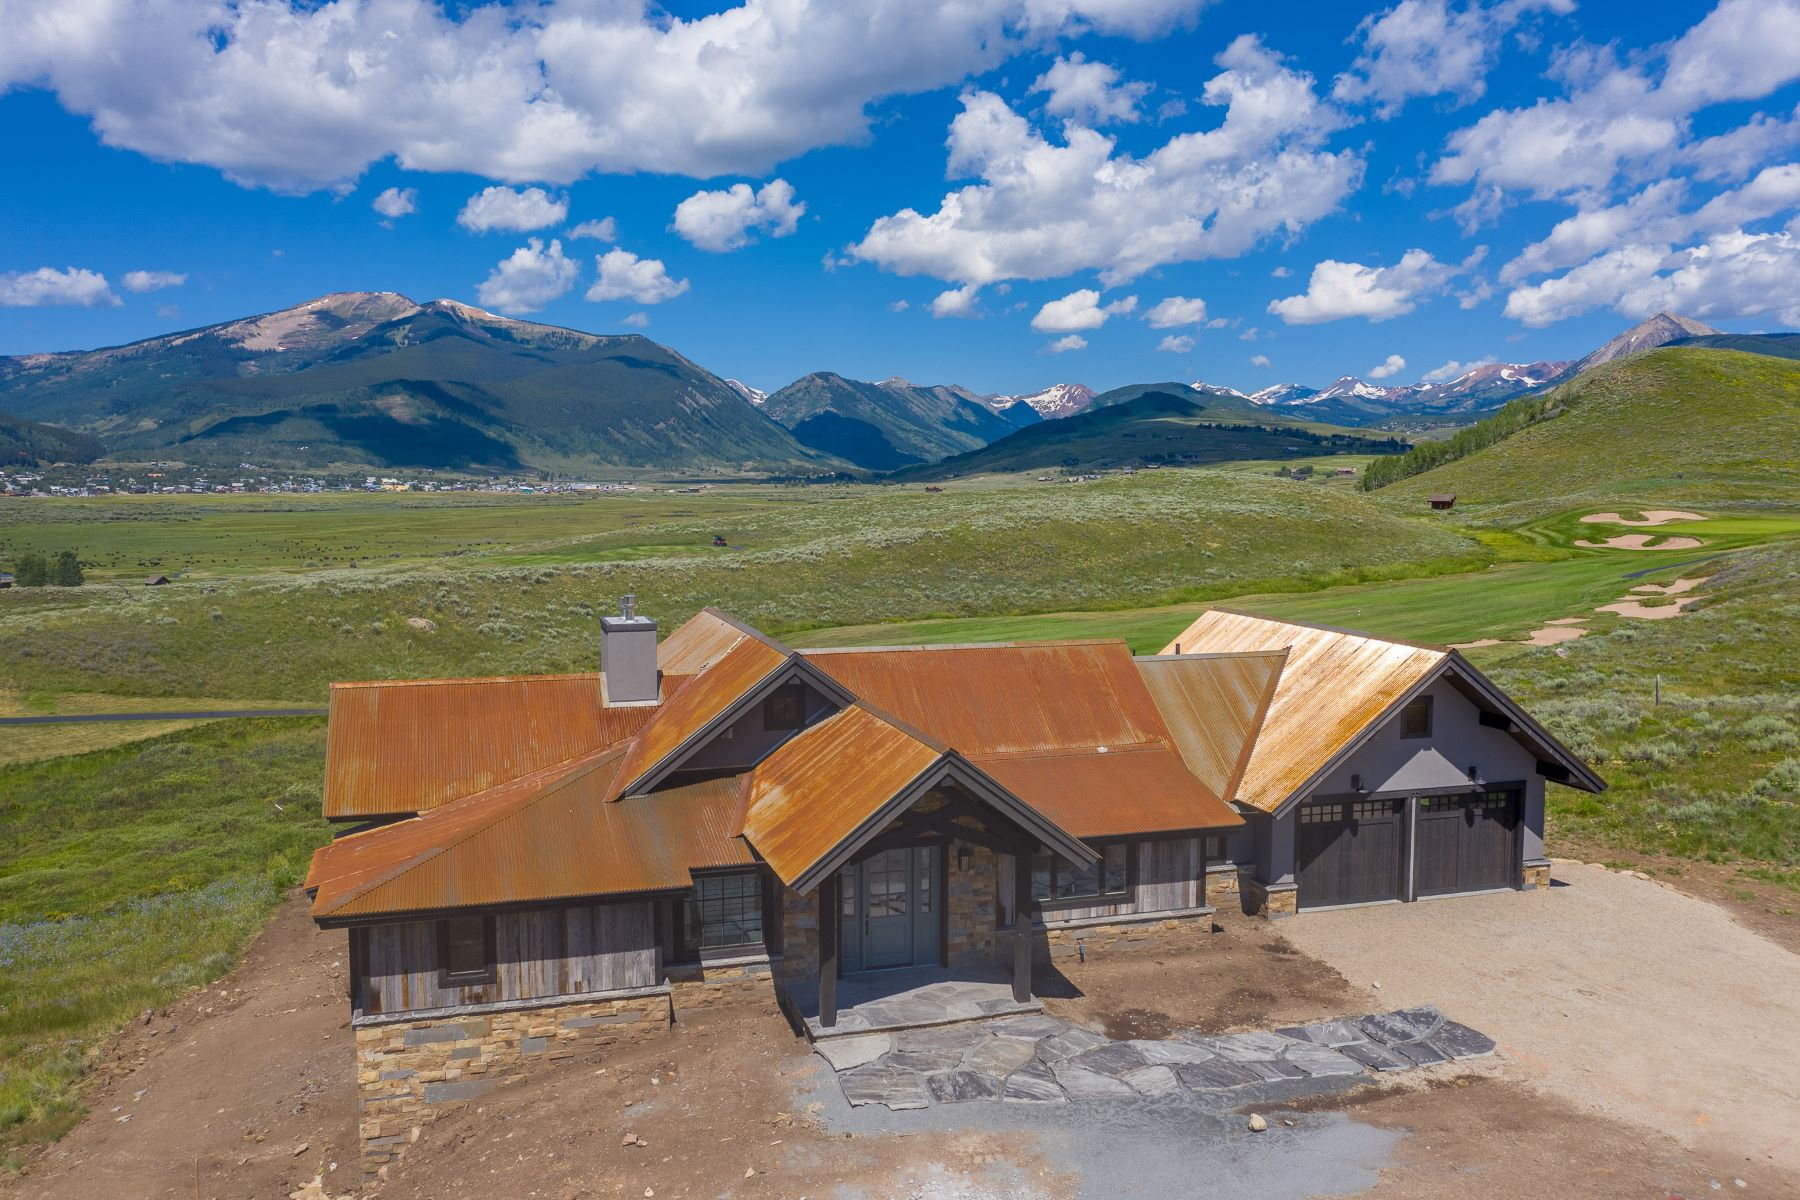 Single Family Homes for Active at 63 Wapiti Way Crested Butte, Colorado 81224 United States